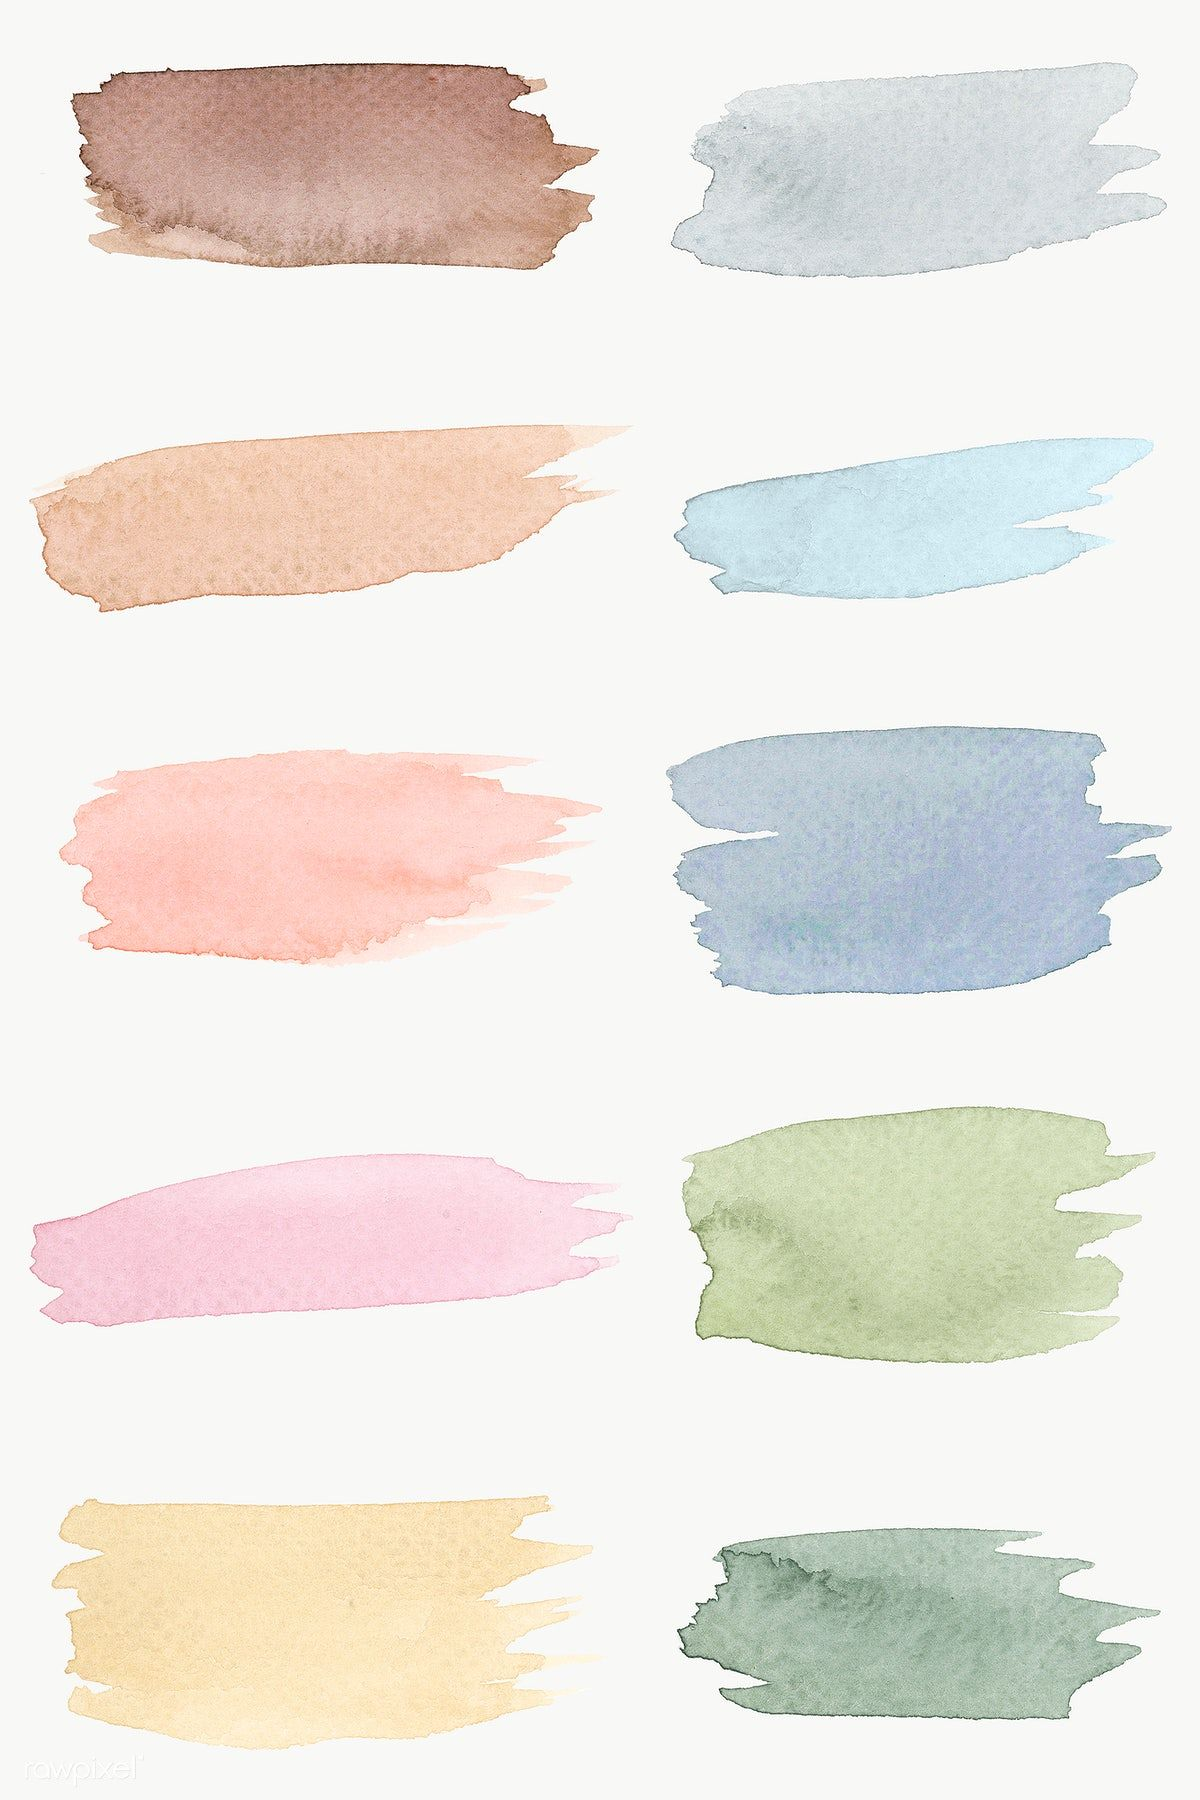 Colorful Watercolor Brush Strokes Transparent Png Free Image By Rawpixel Com Aew Watercolor Splash Png Watercolor Splash Brush Stroke Png